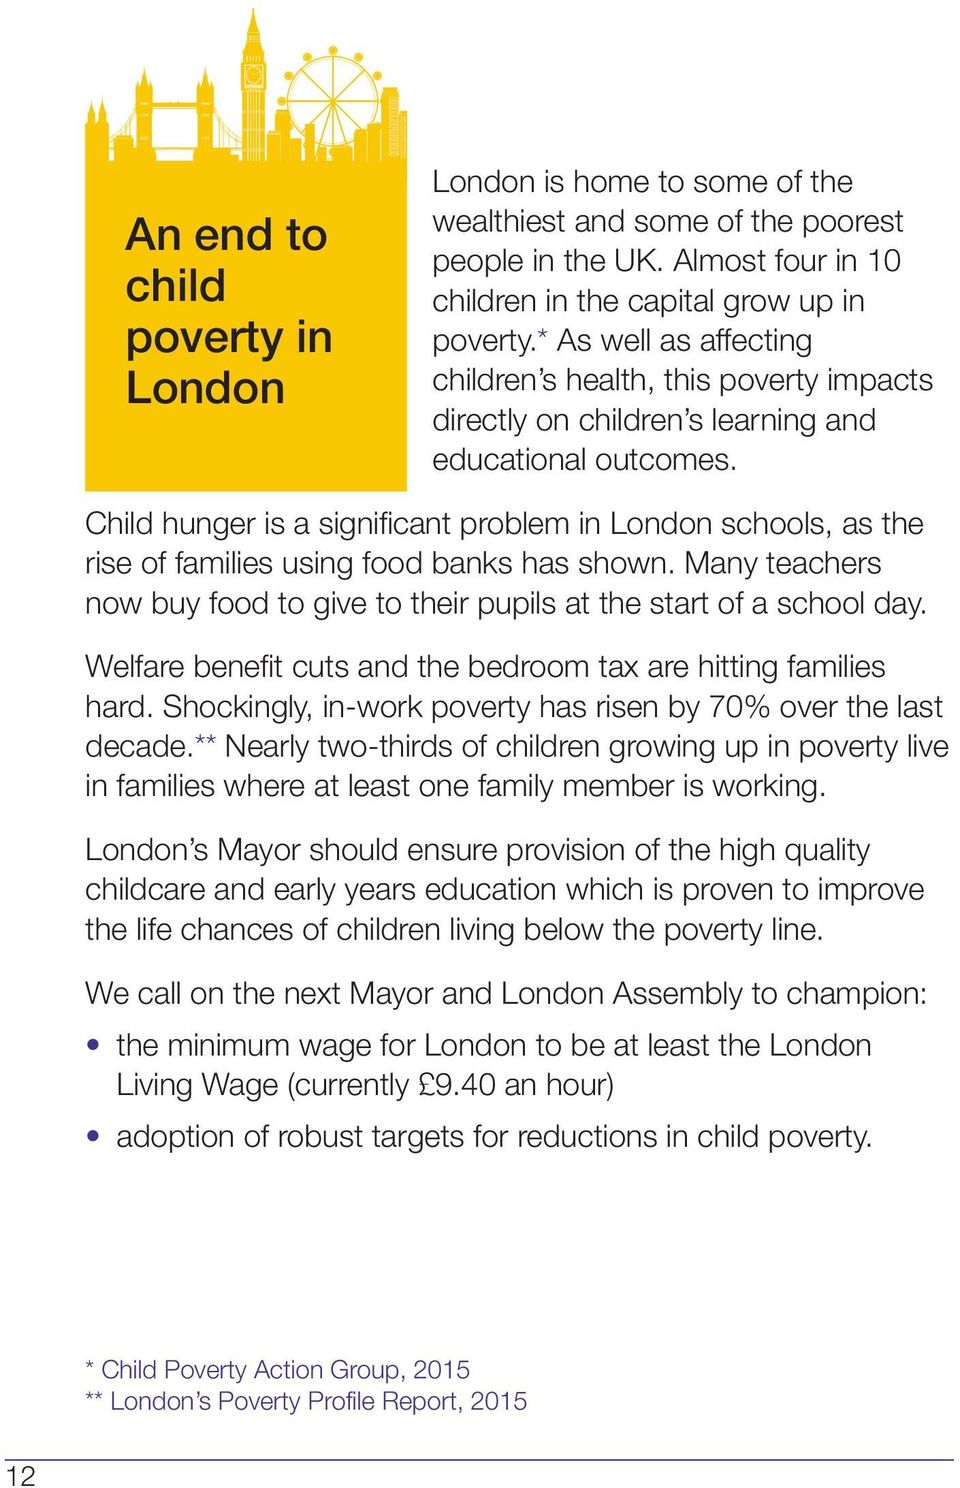 Child hunger is a significant problem in London schools, as the rise of families using food banks has shown. Many teachers now buy food to give to their pupils at the start of a school day.